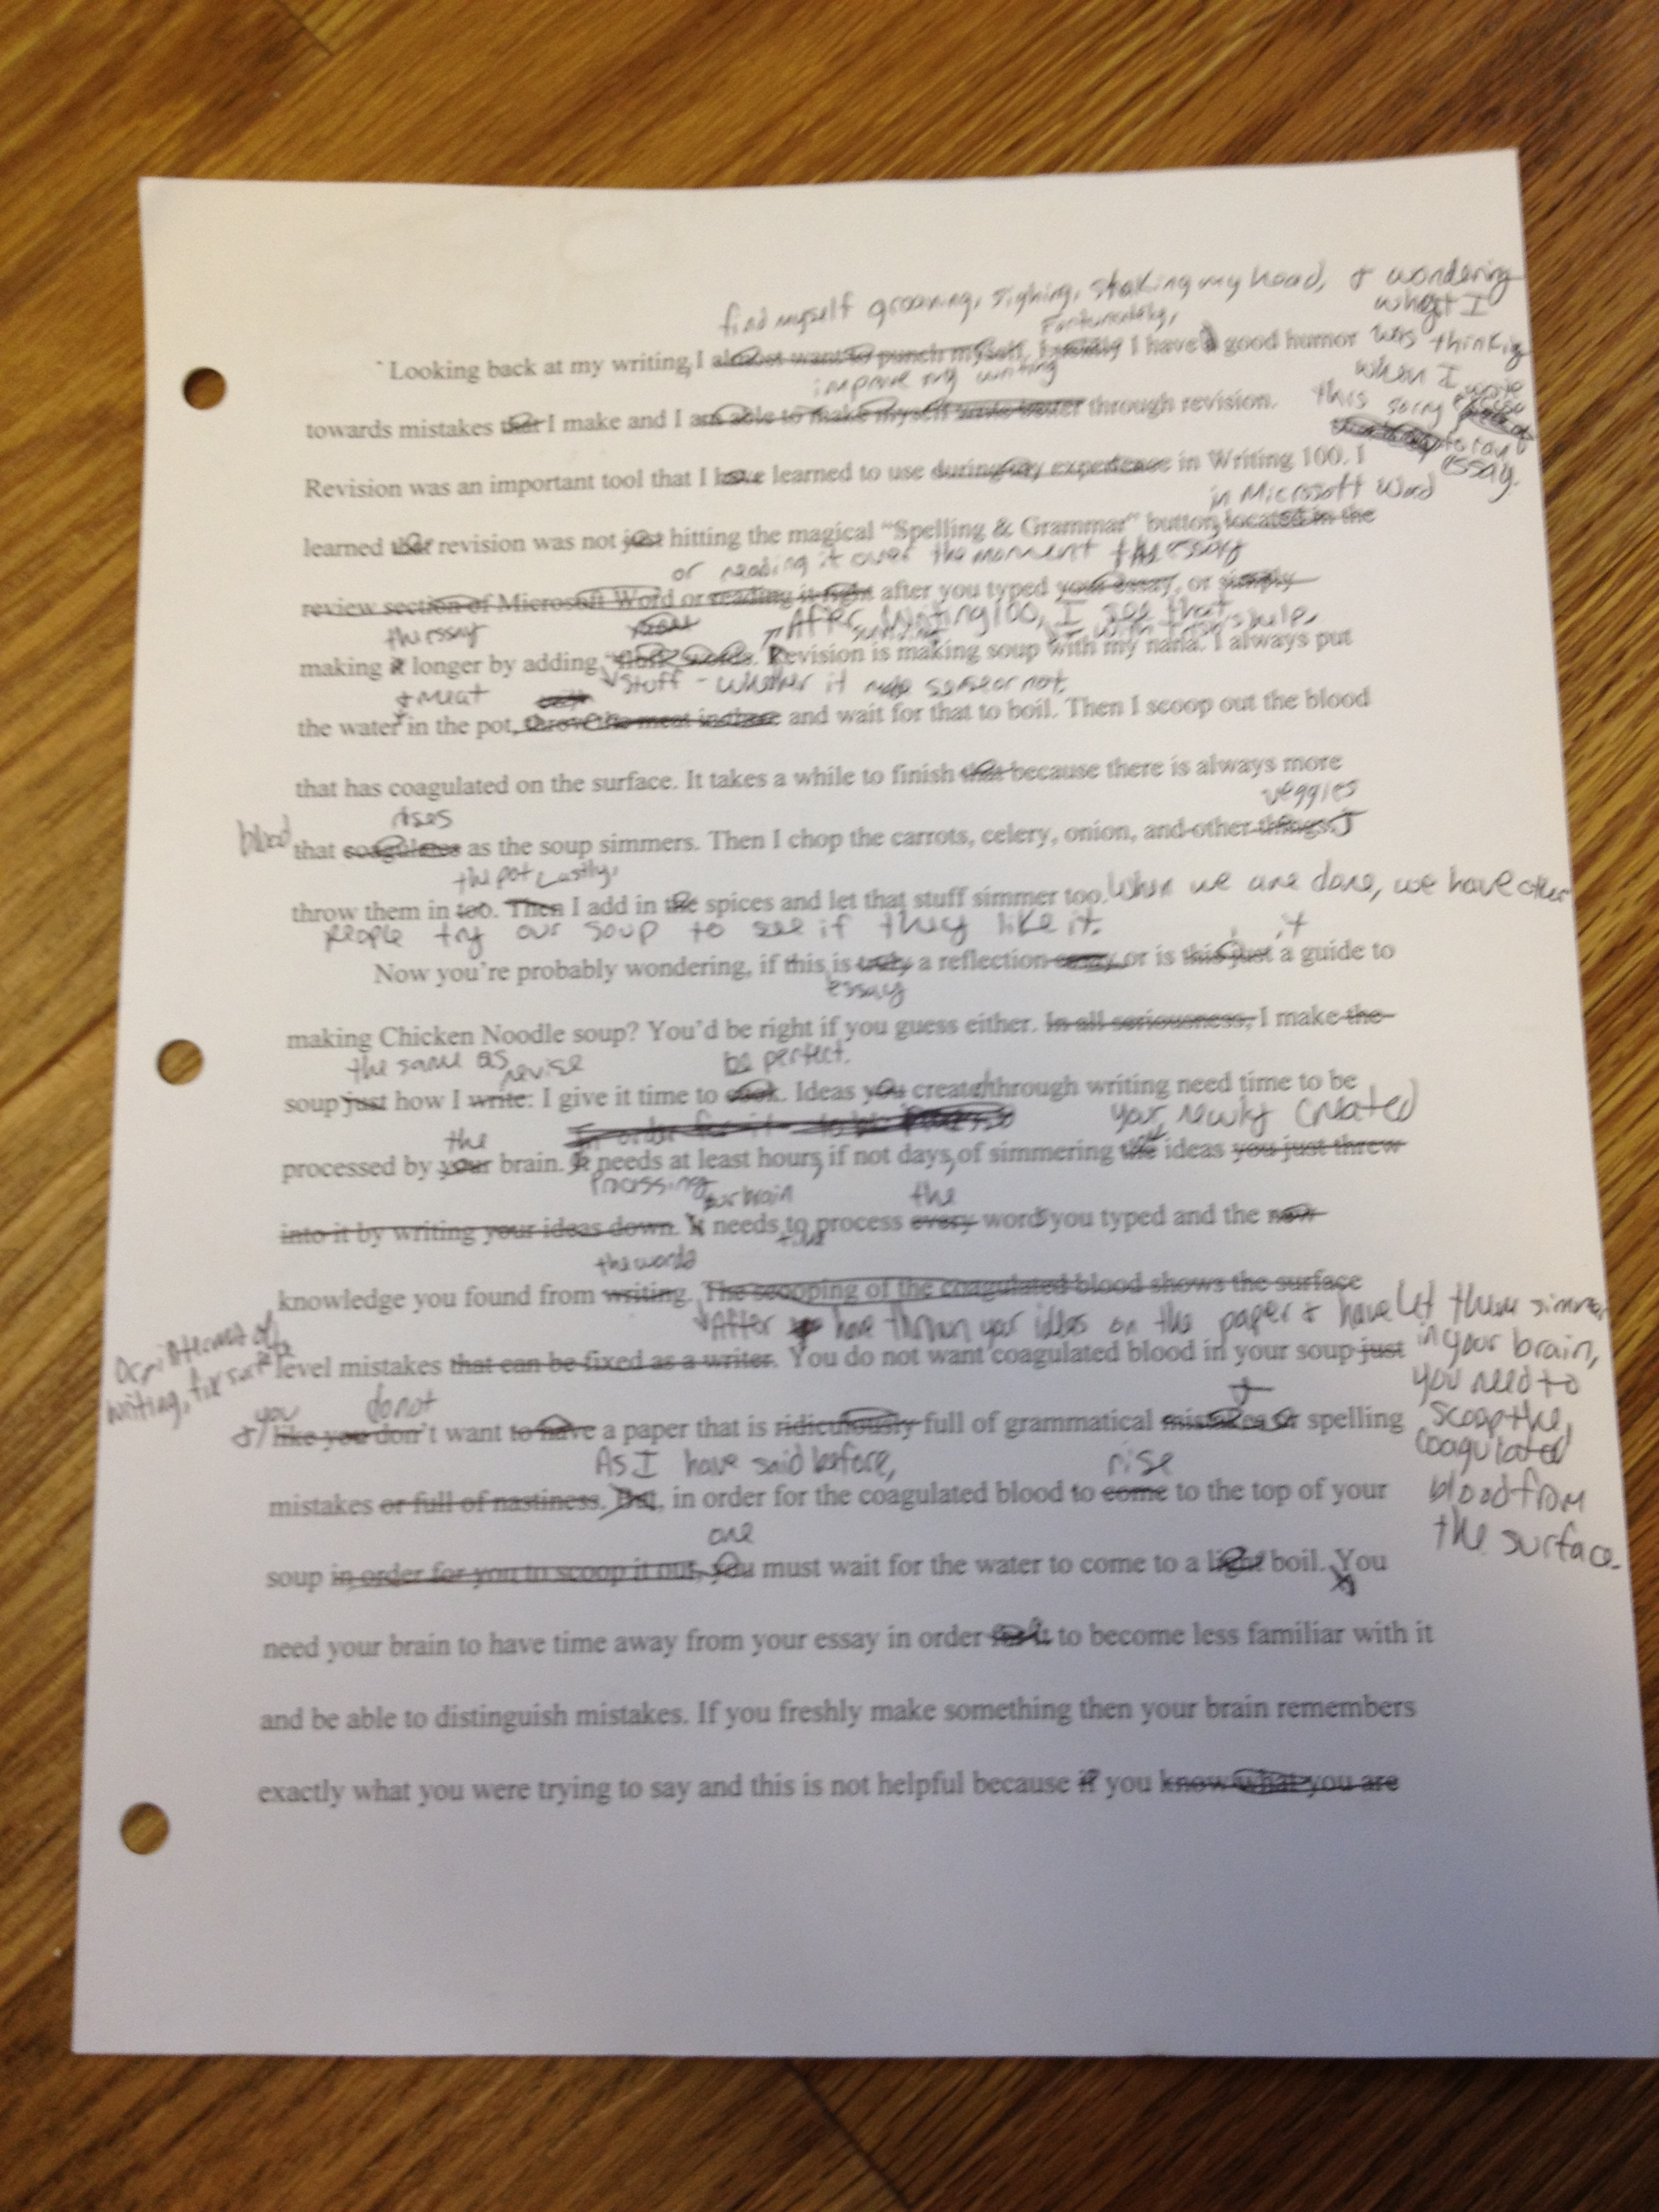 017 Research Paper How Can You Make Longer Photo Archaicawful A To Get Full